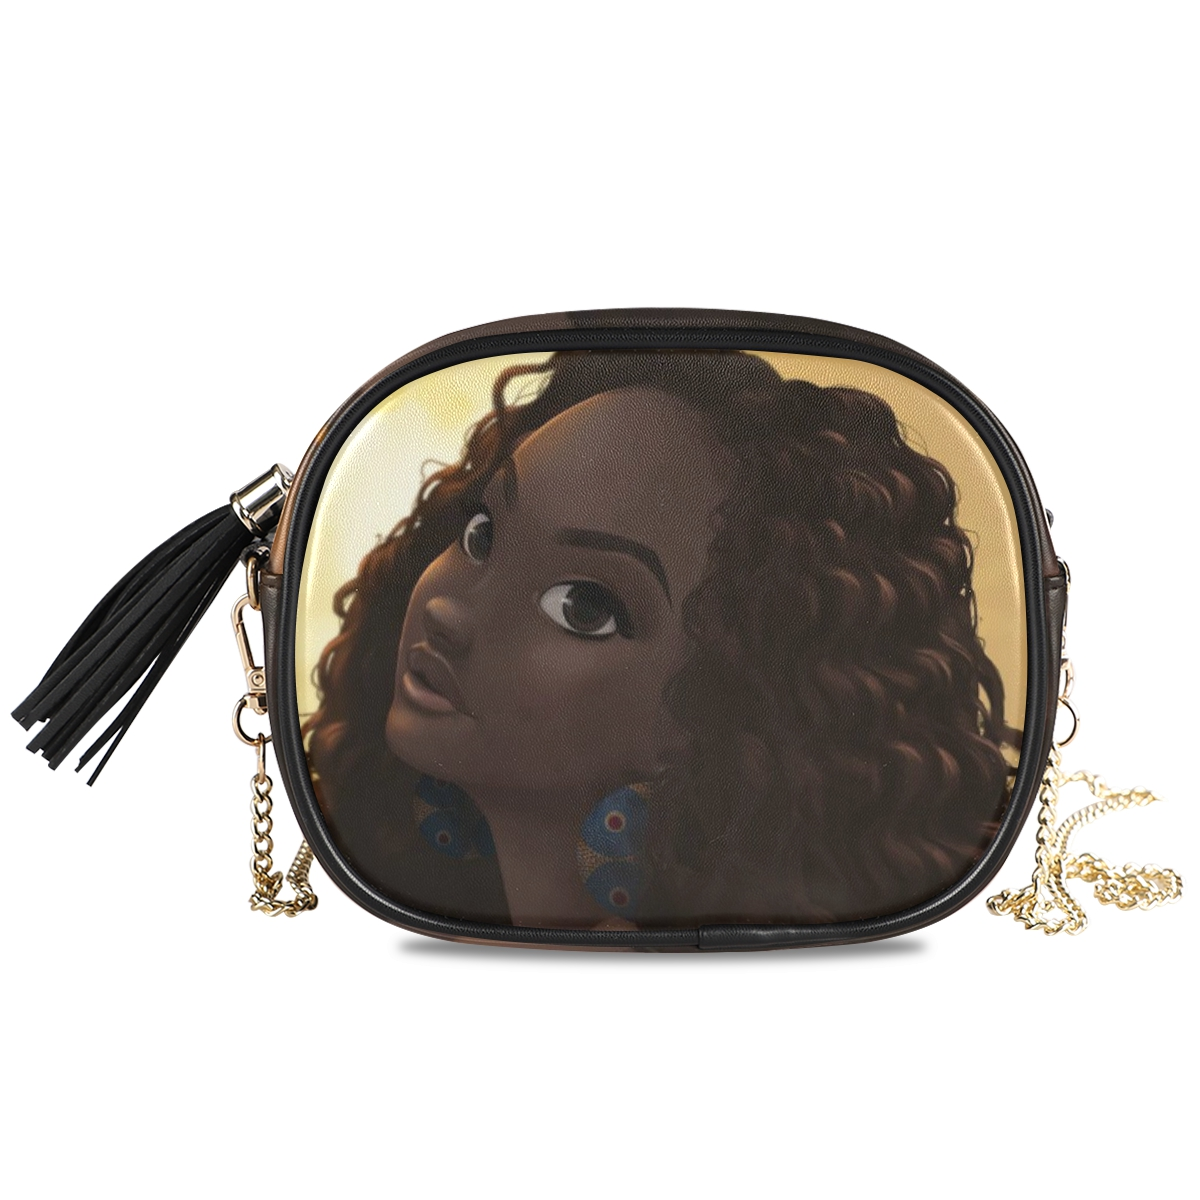 product-New Shoulder crossbody bag women bags 2020 PU Leather Chain bags Afro Girls black Women Mess-2